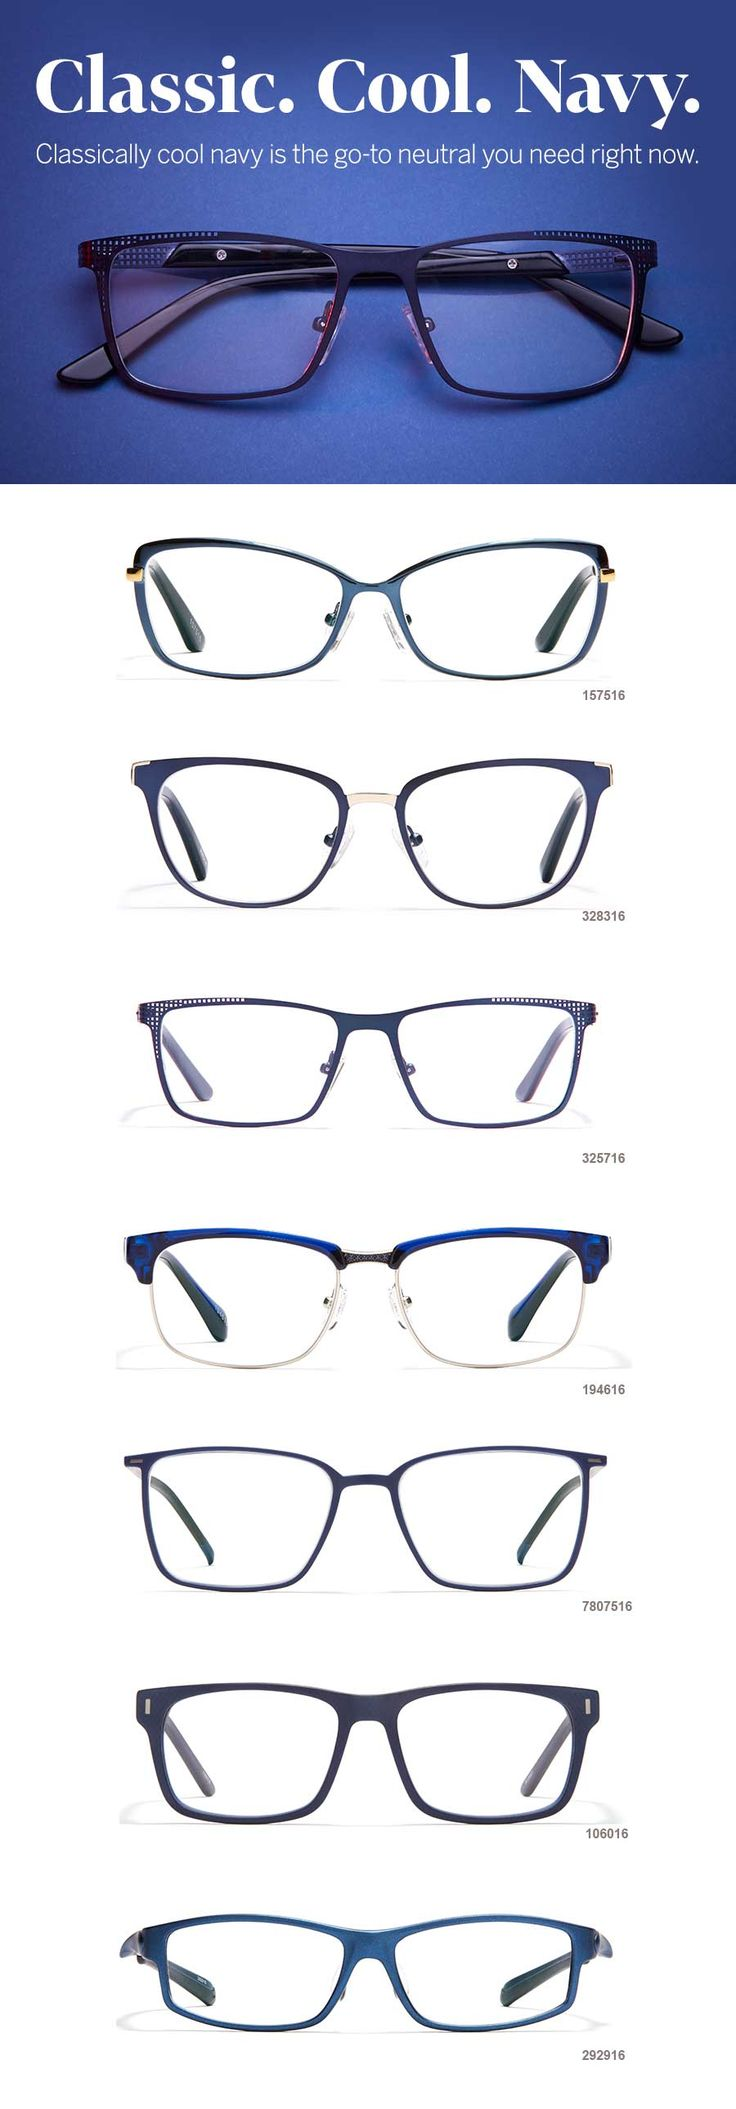 Perfect navy glasses to pair with your navy OOTD!